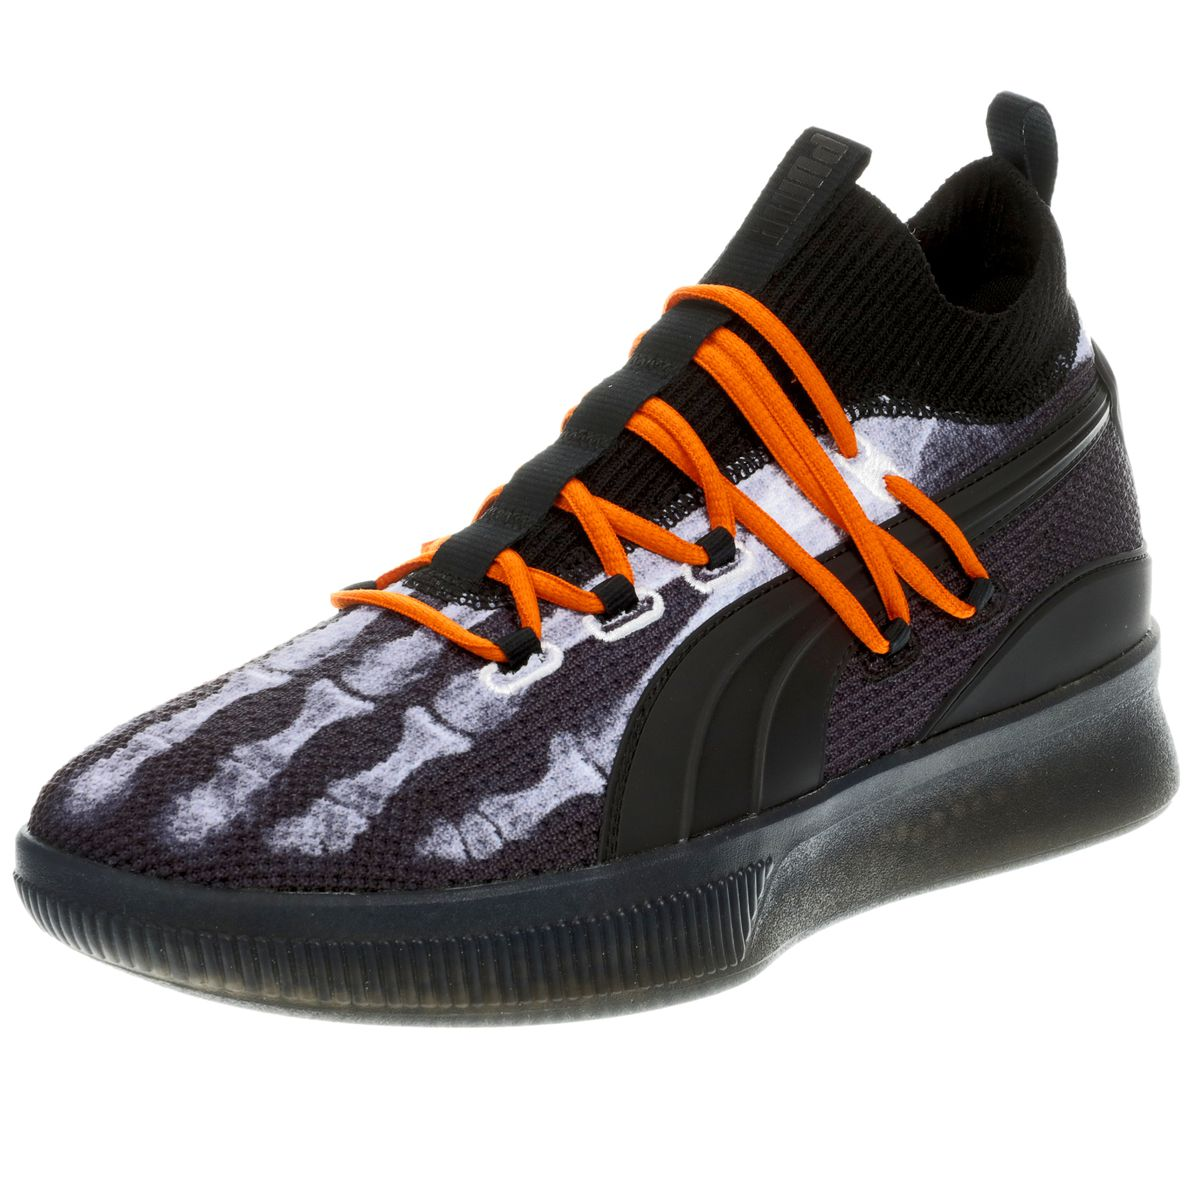 Puma S Second Colorway Is The Halloween Themed Clyde Court